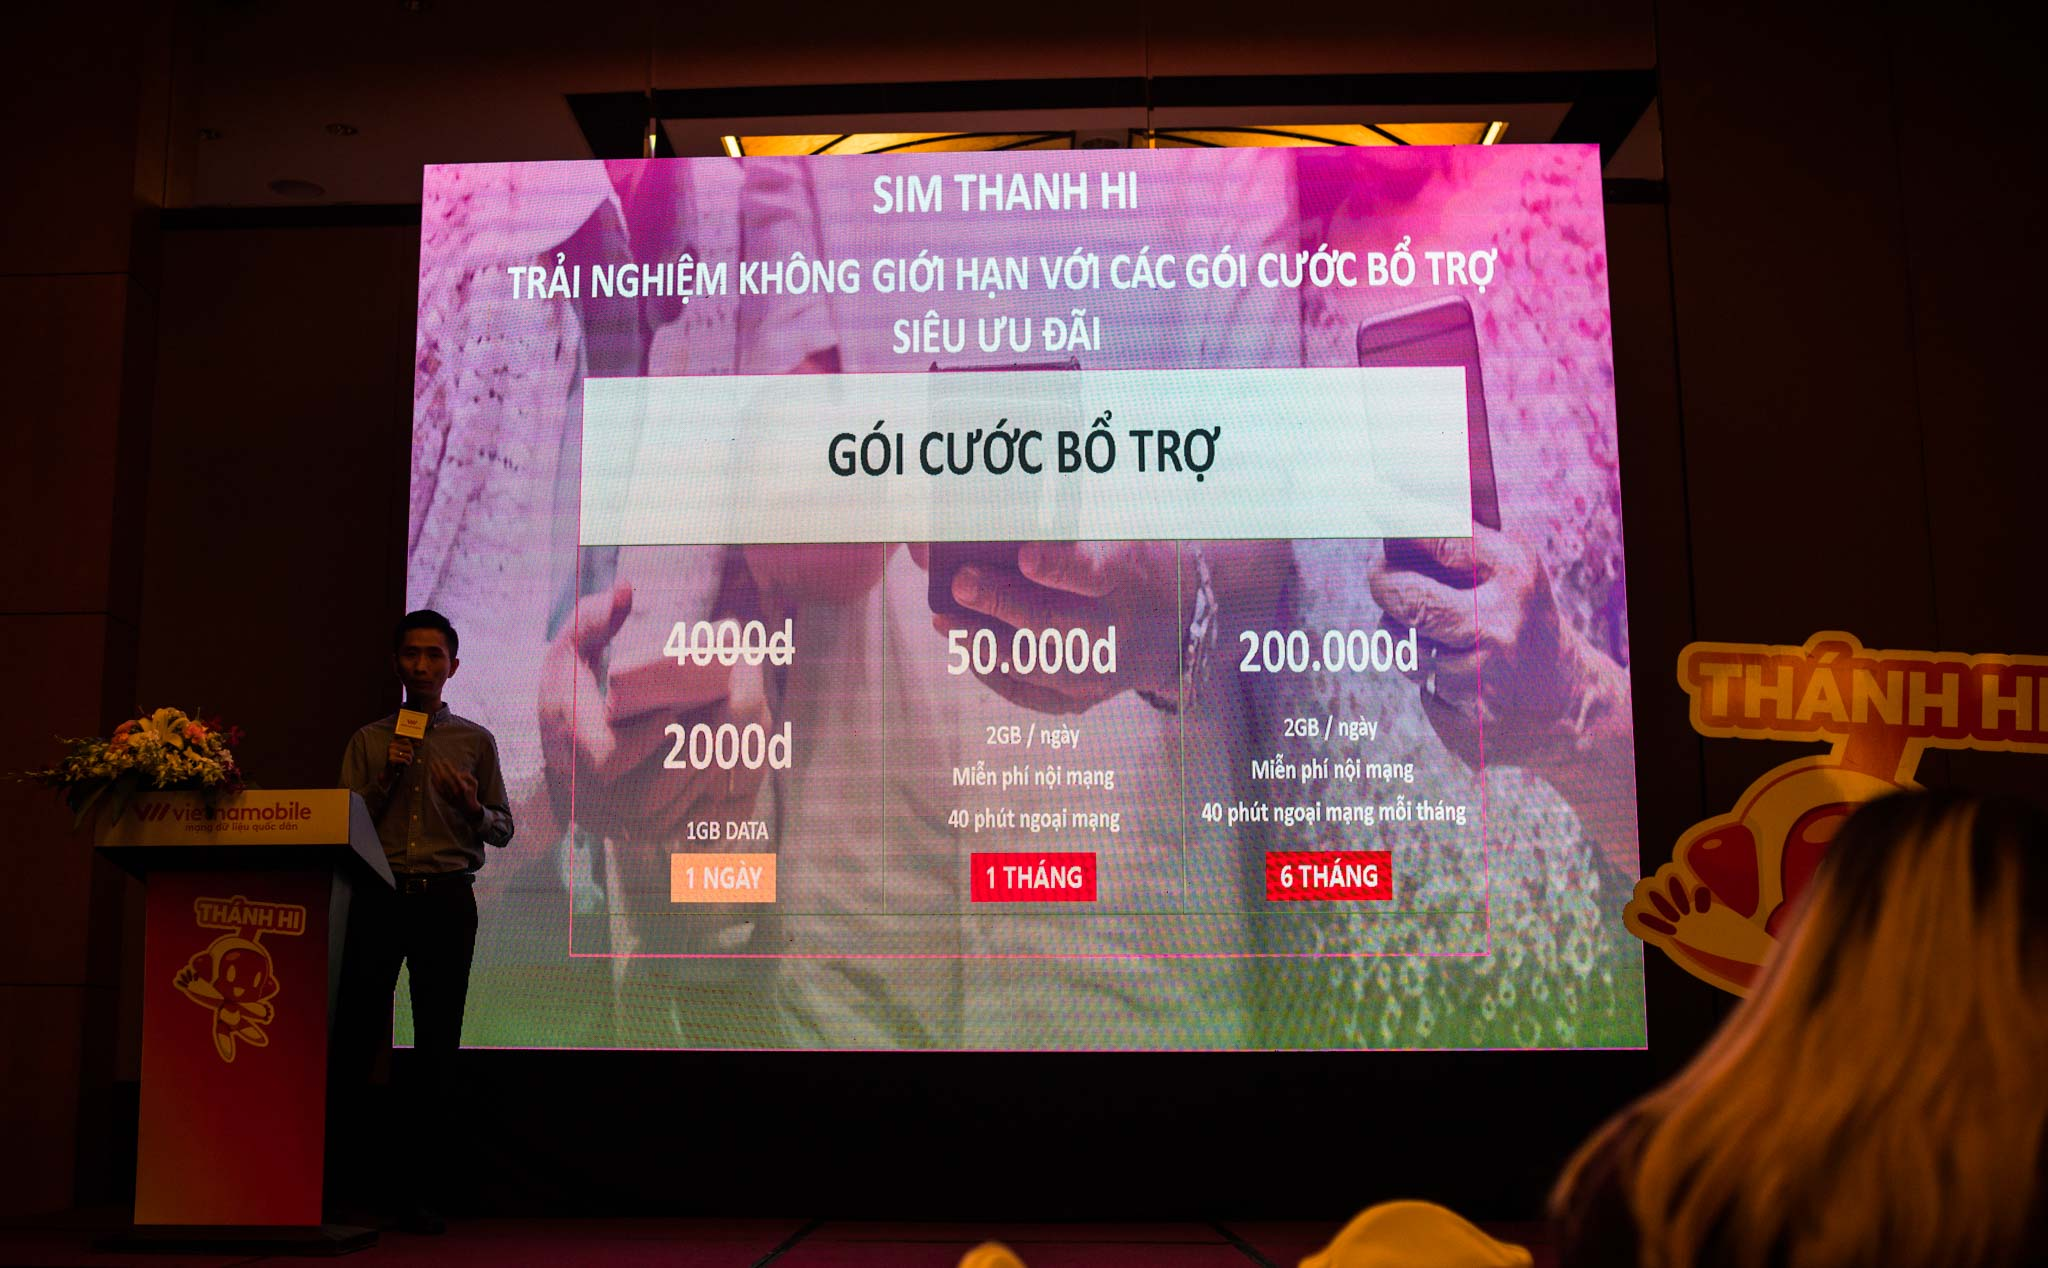 Vietnamobile launches SIM STONE HI - 20k / month with unlimited data, VoWIFI calls with wifi